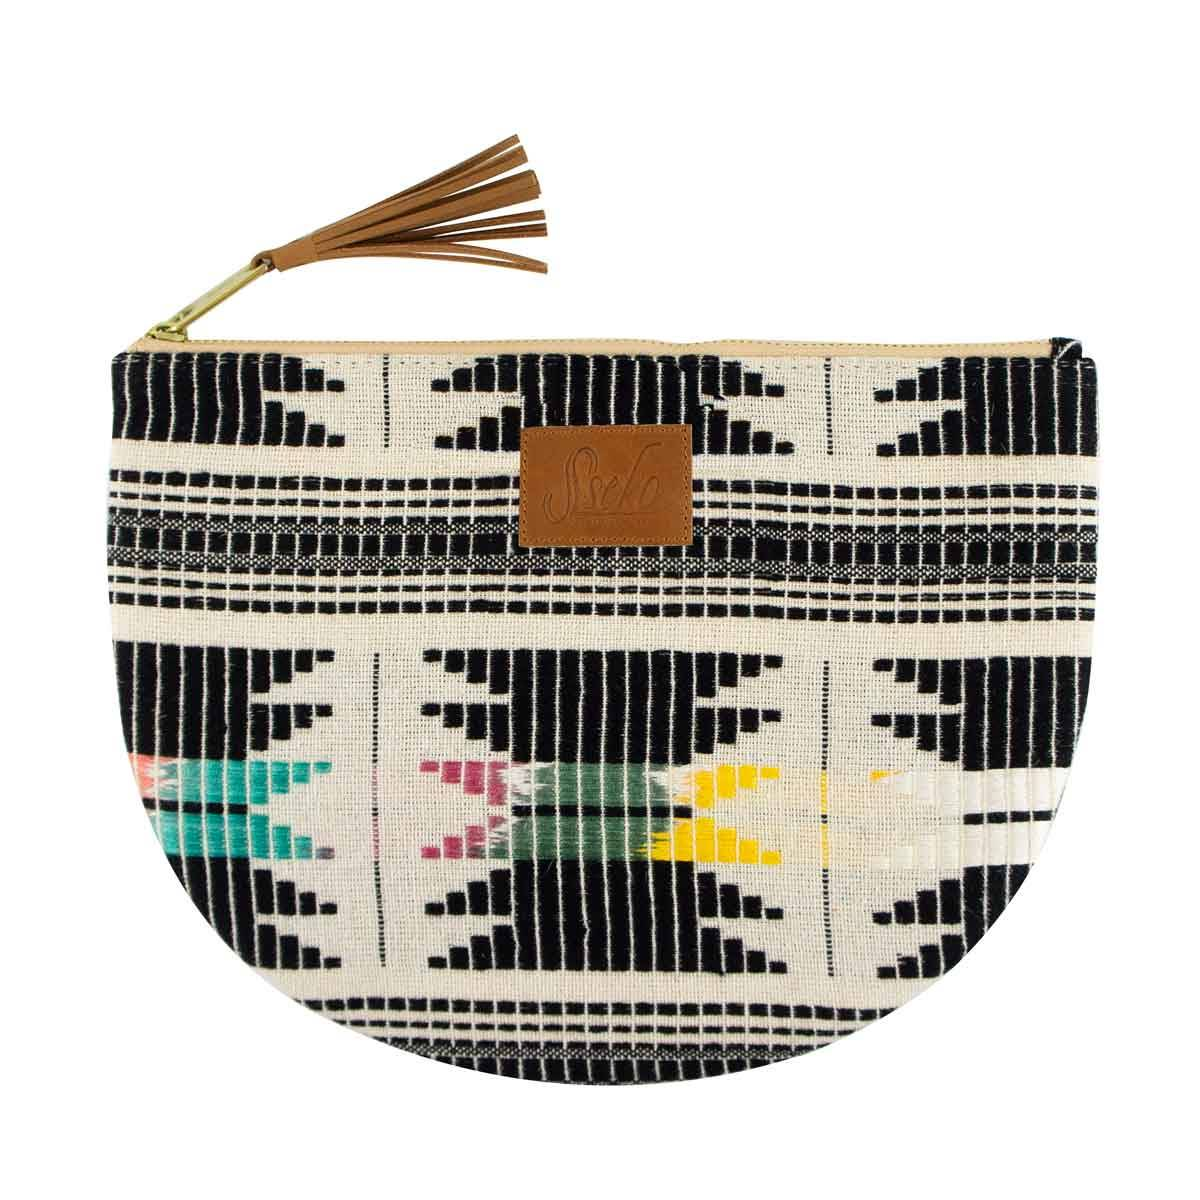 Woven Large Moon Clutch in Haryana